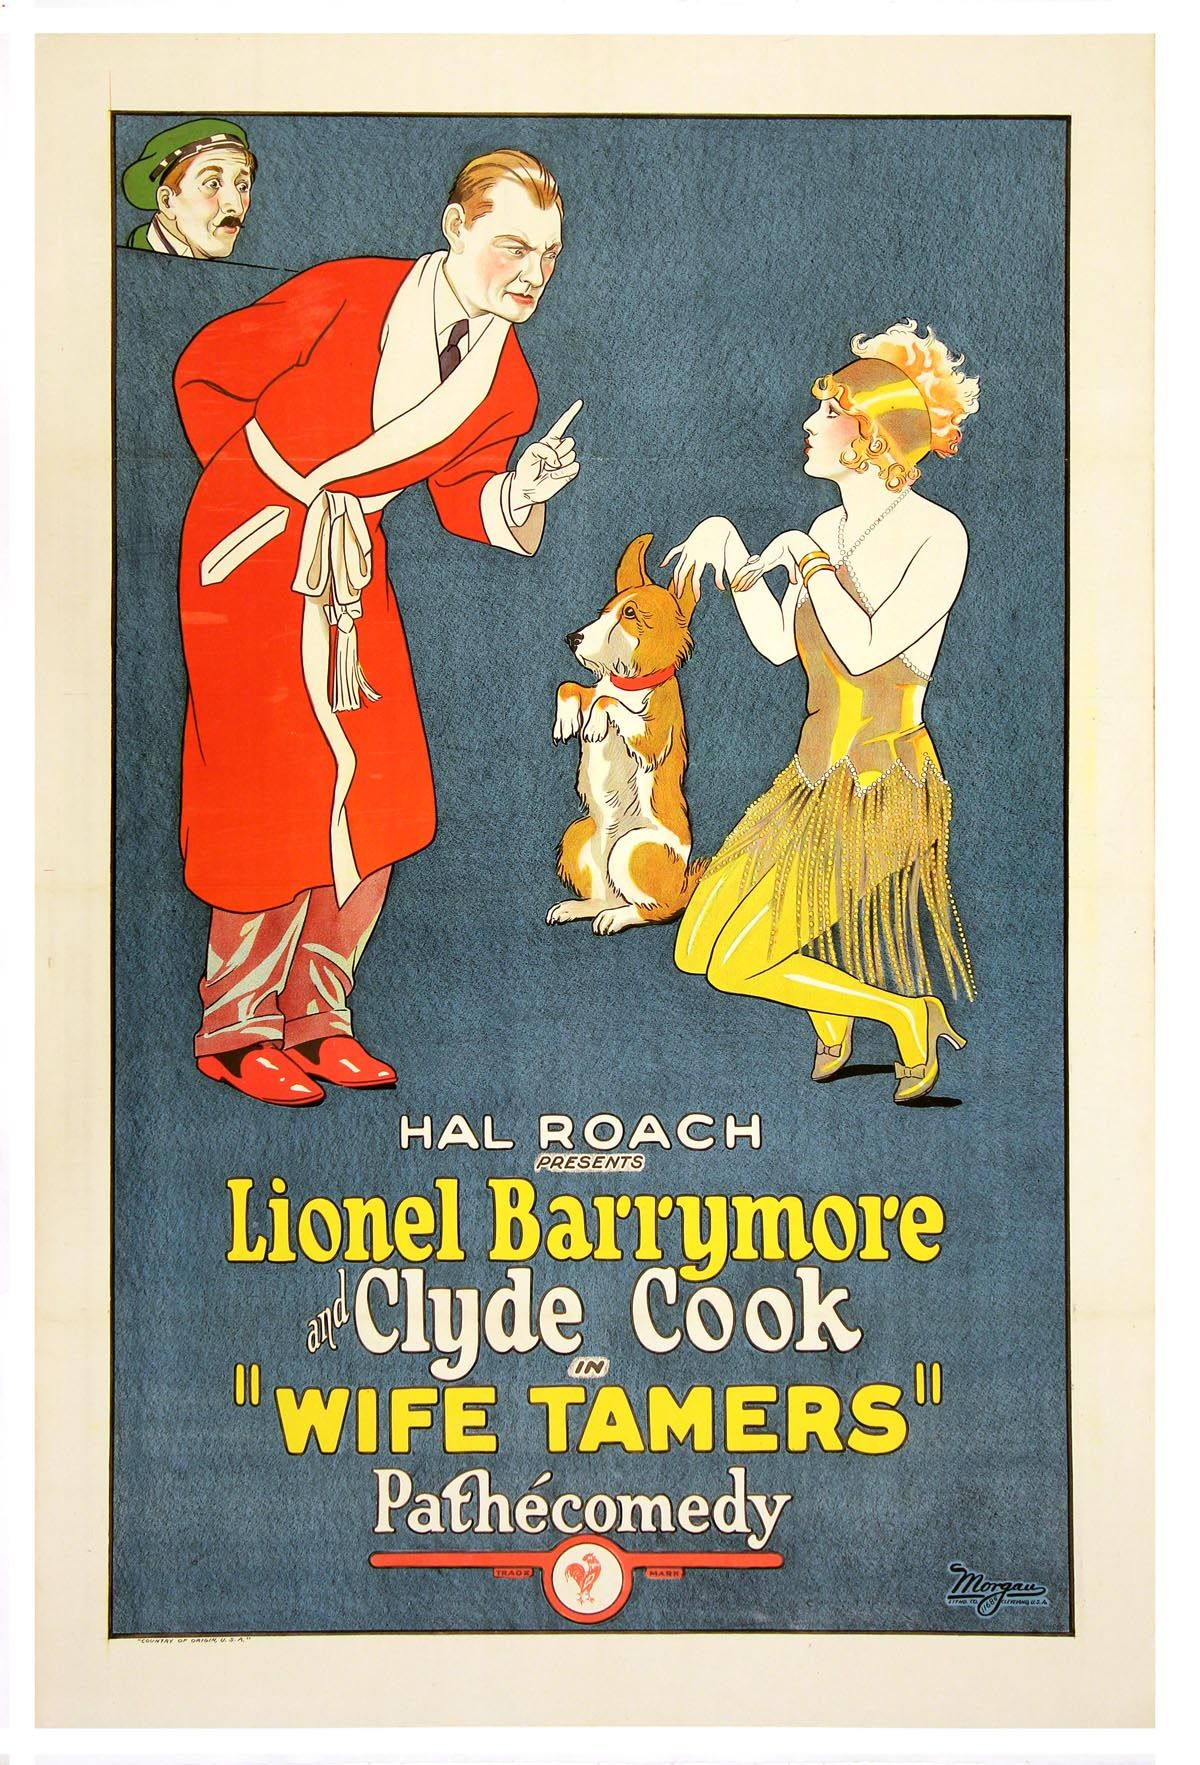 Wife Tamers, 1926